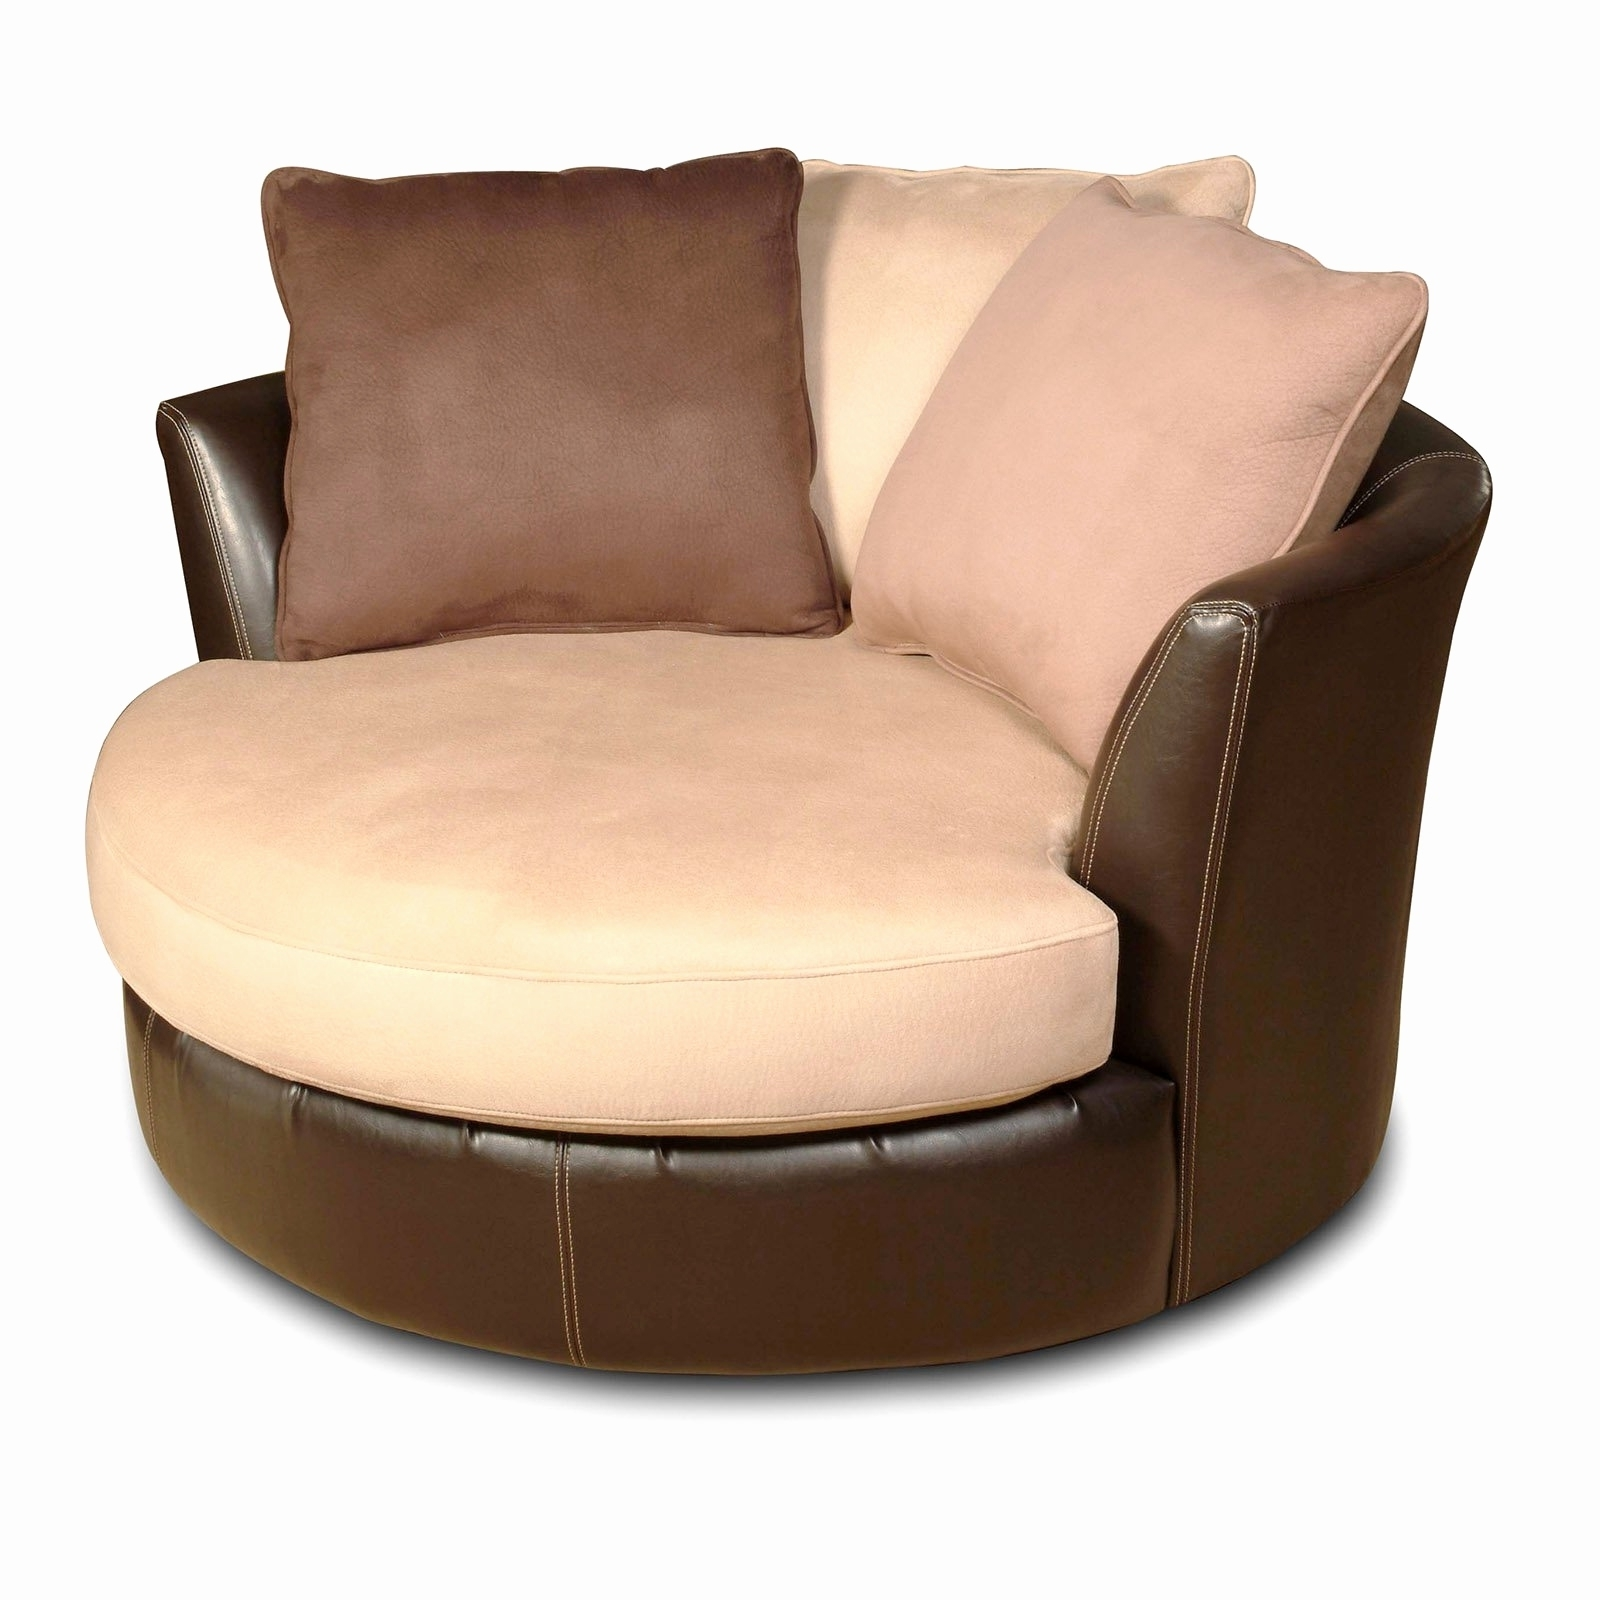 Fashionable Lovely Round Sofa Chair 2018 – Couches Ideas With Big Sofa Chairs (View 14 of 20)